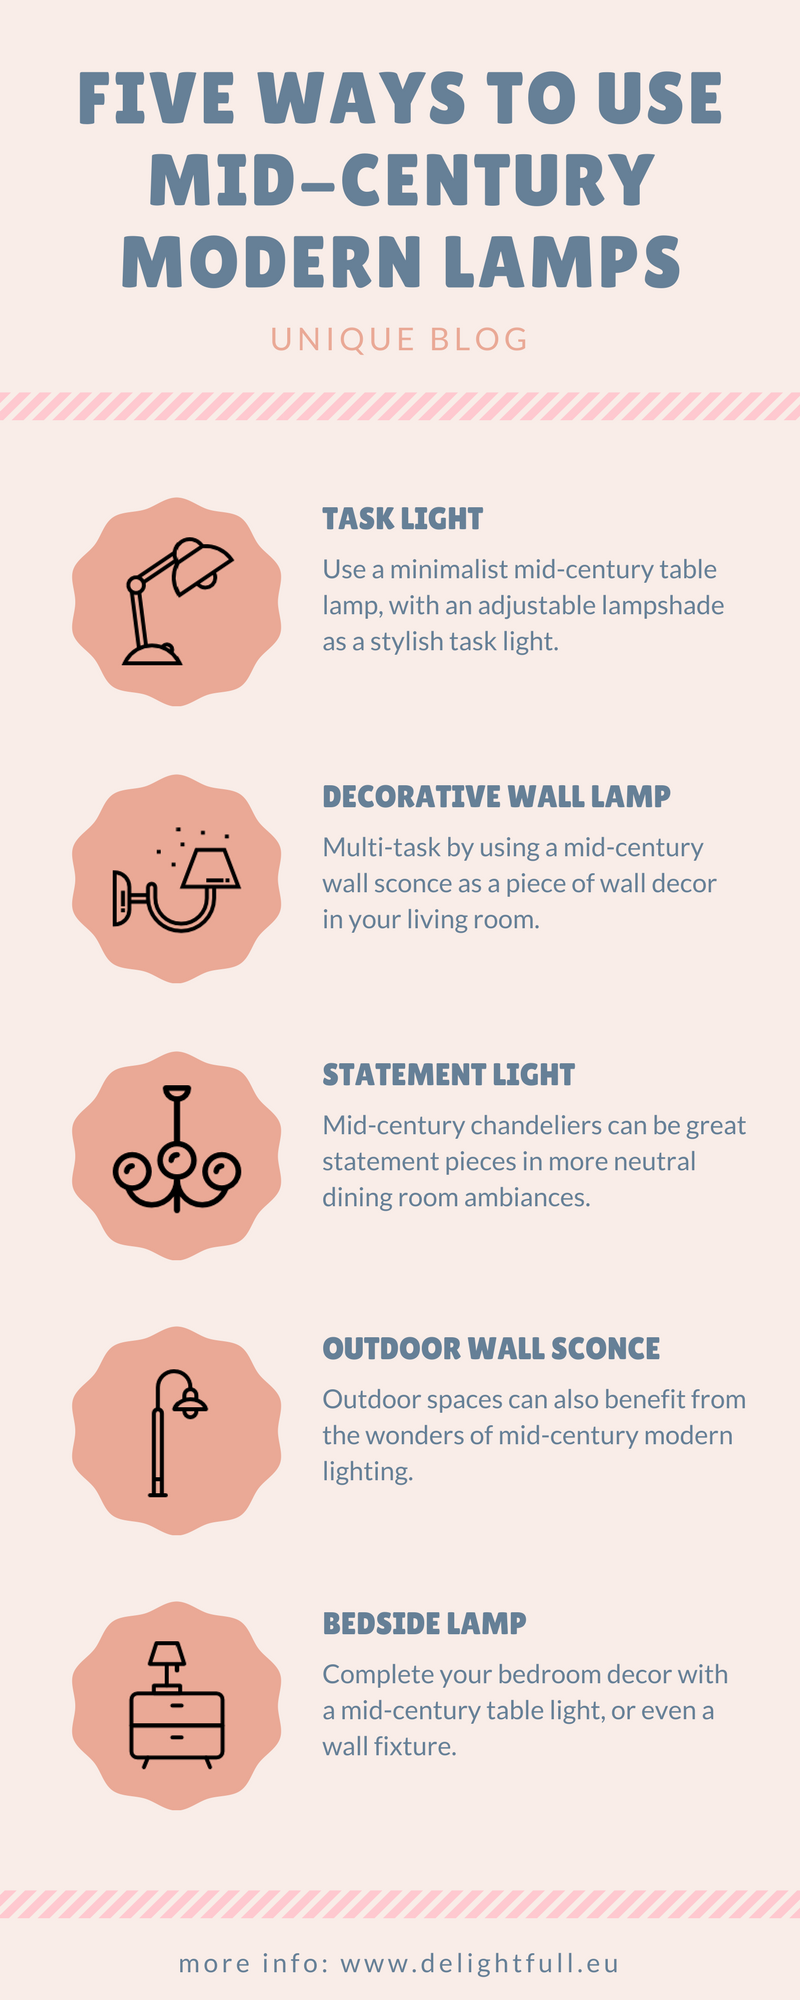 Learn How To Clean Your Mid-Century Modern Lights Like A Pro ➤ To see more news about the Best Design Projects in the world visit us at http://www.bestdesignprojects.com #homedecor #interiordesign #bestdesignprojects @bocadolobo @delightfulll @brabbu @essentialhomeeu @circudesign @mvalentinabath @luxxu @covethouse_